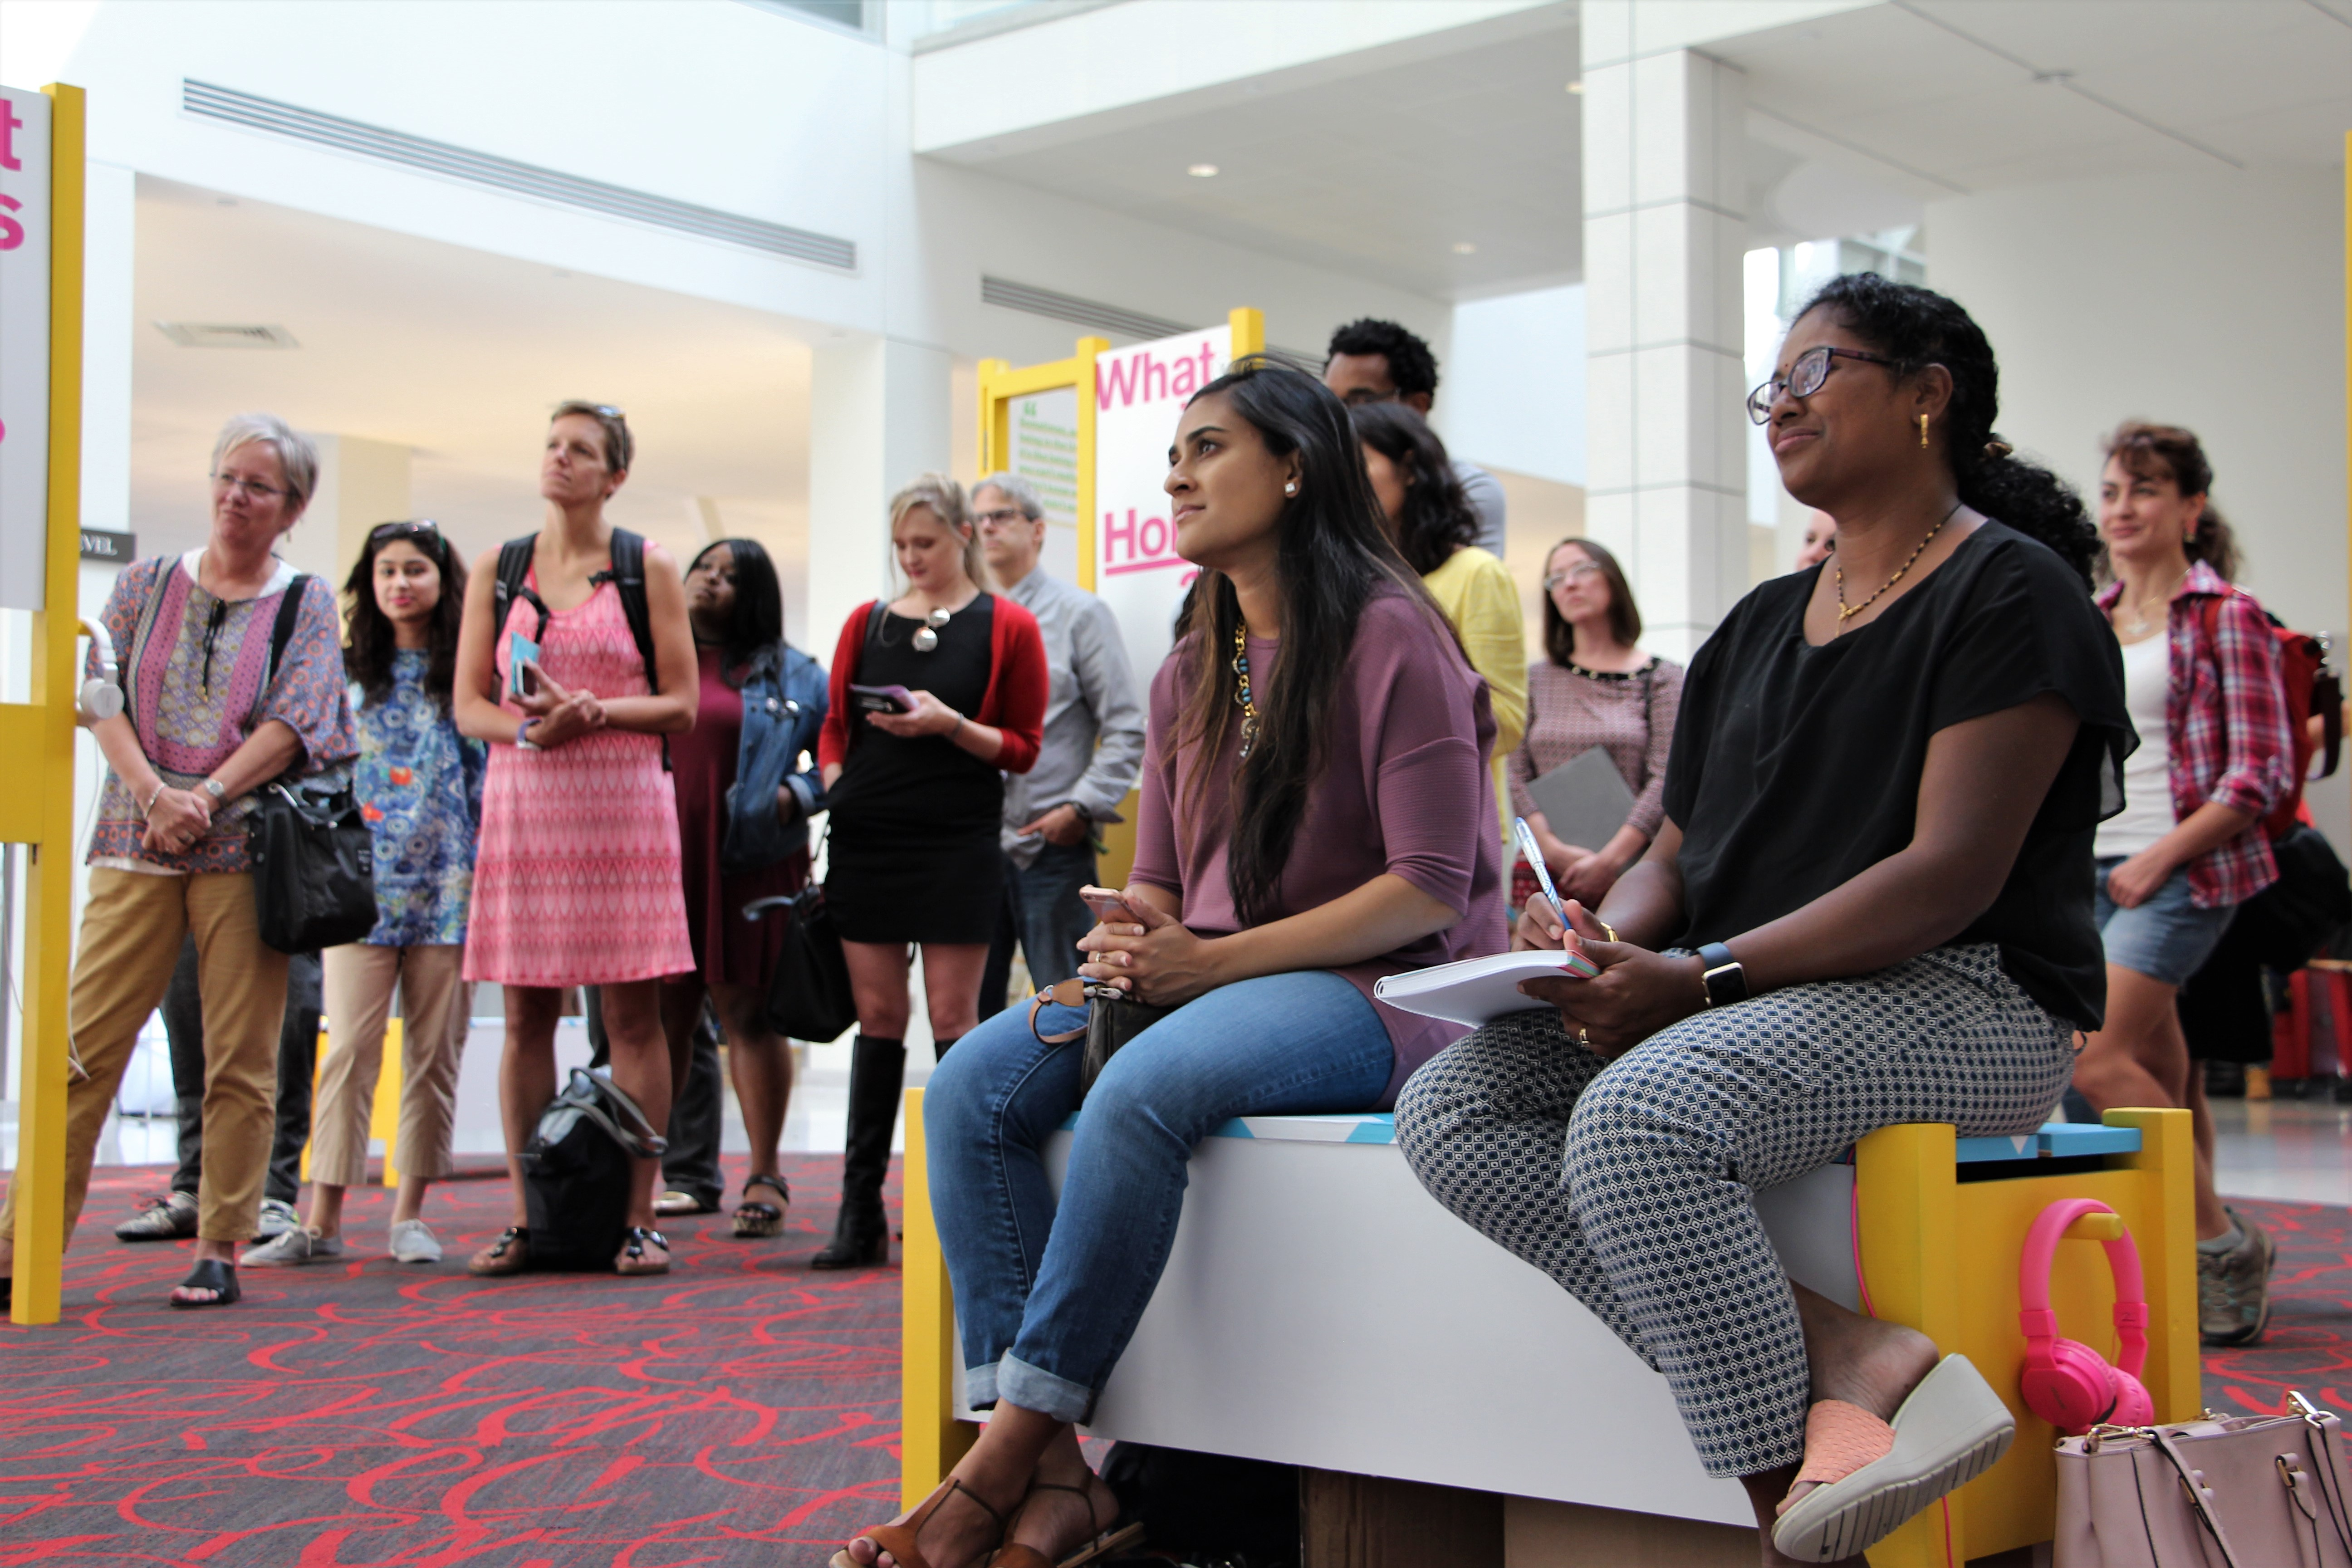 Exhibit attendees listening to the panel discussion in the Tangeman University Center atrium.